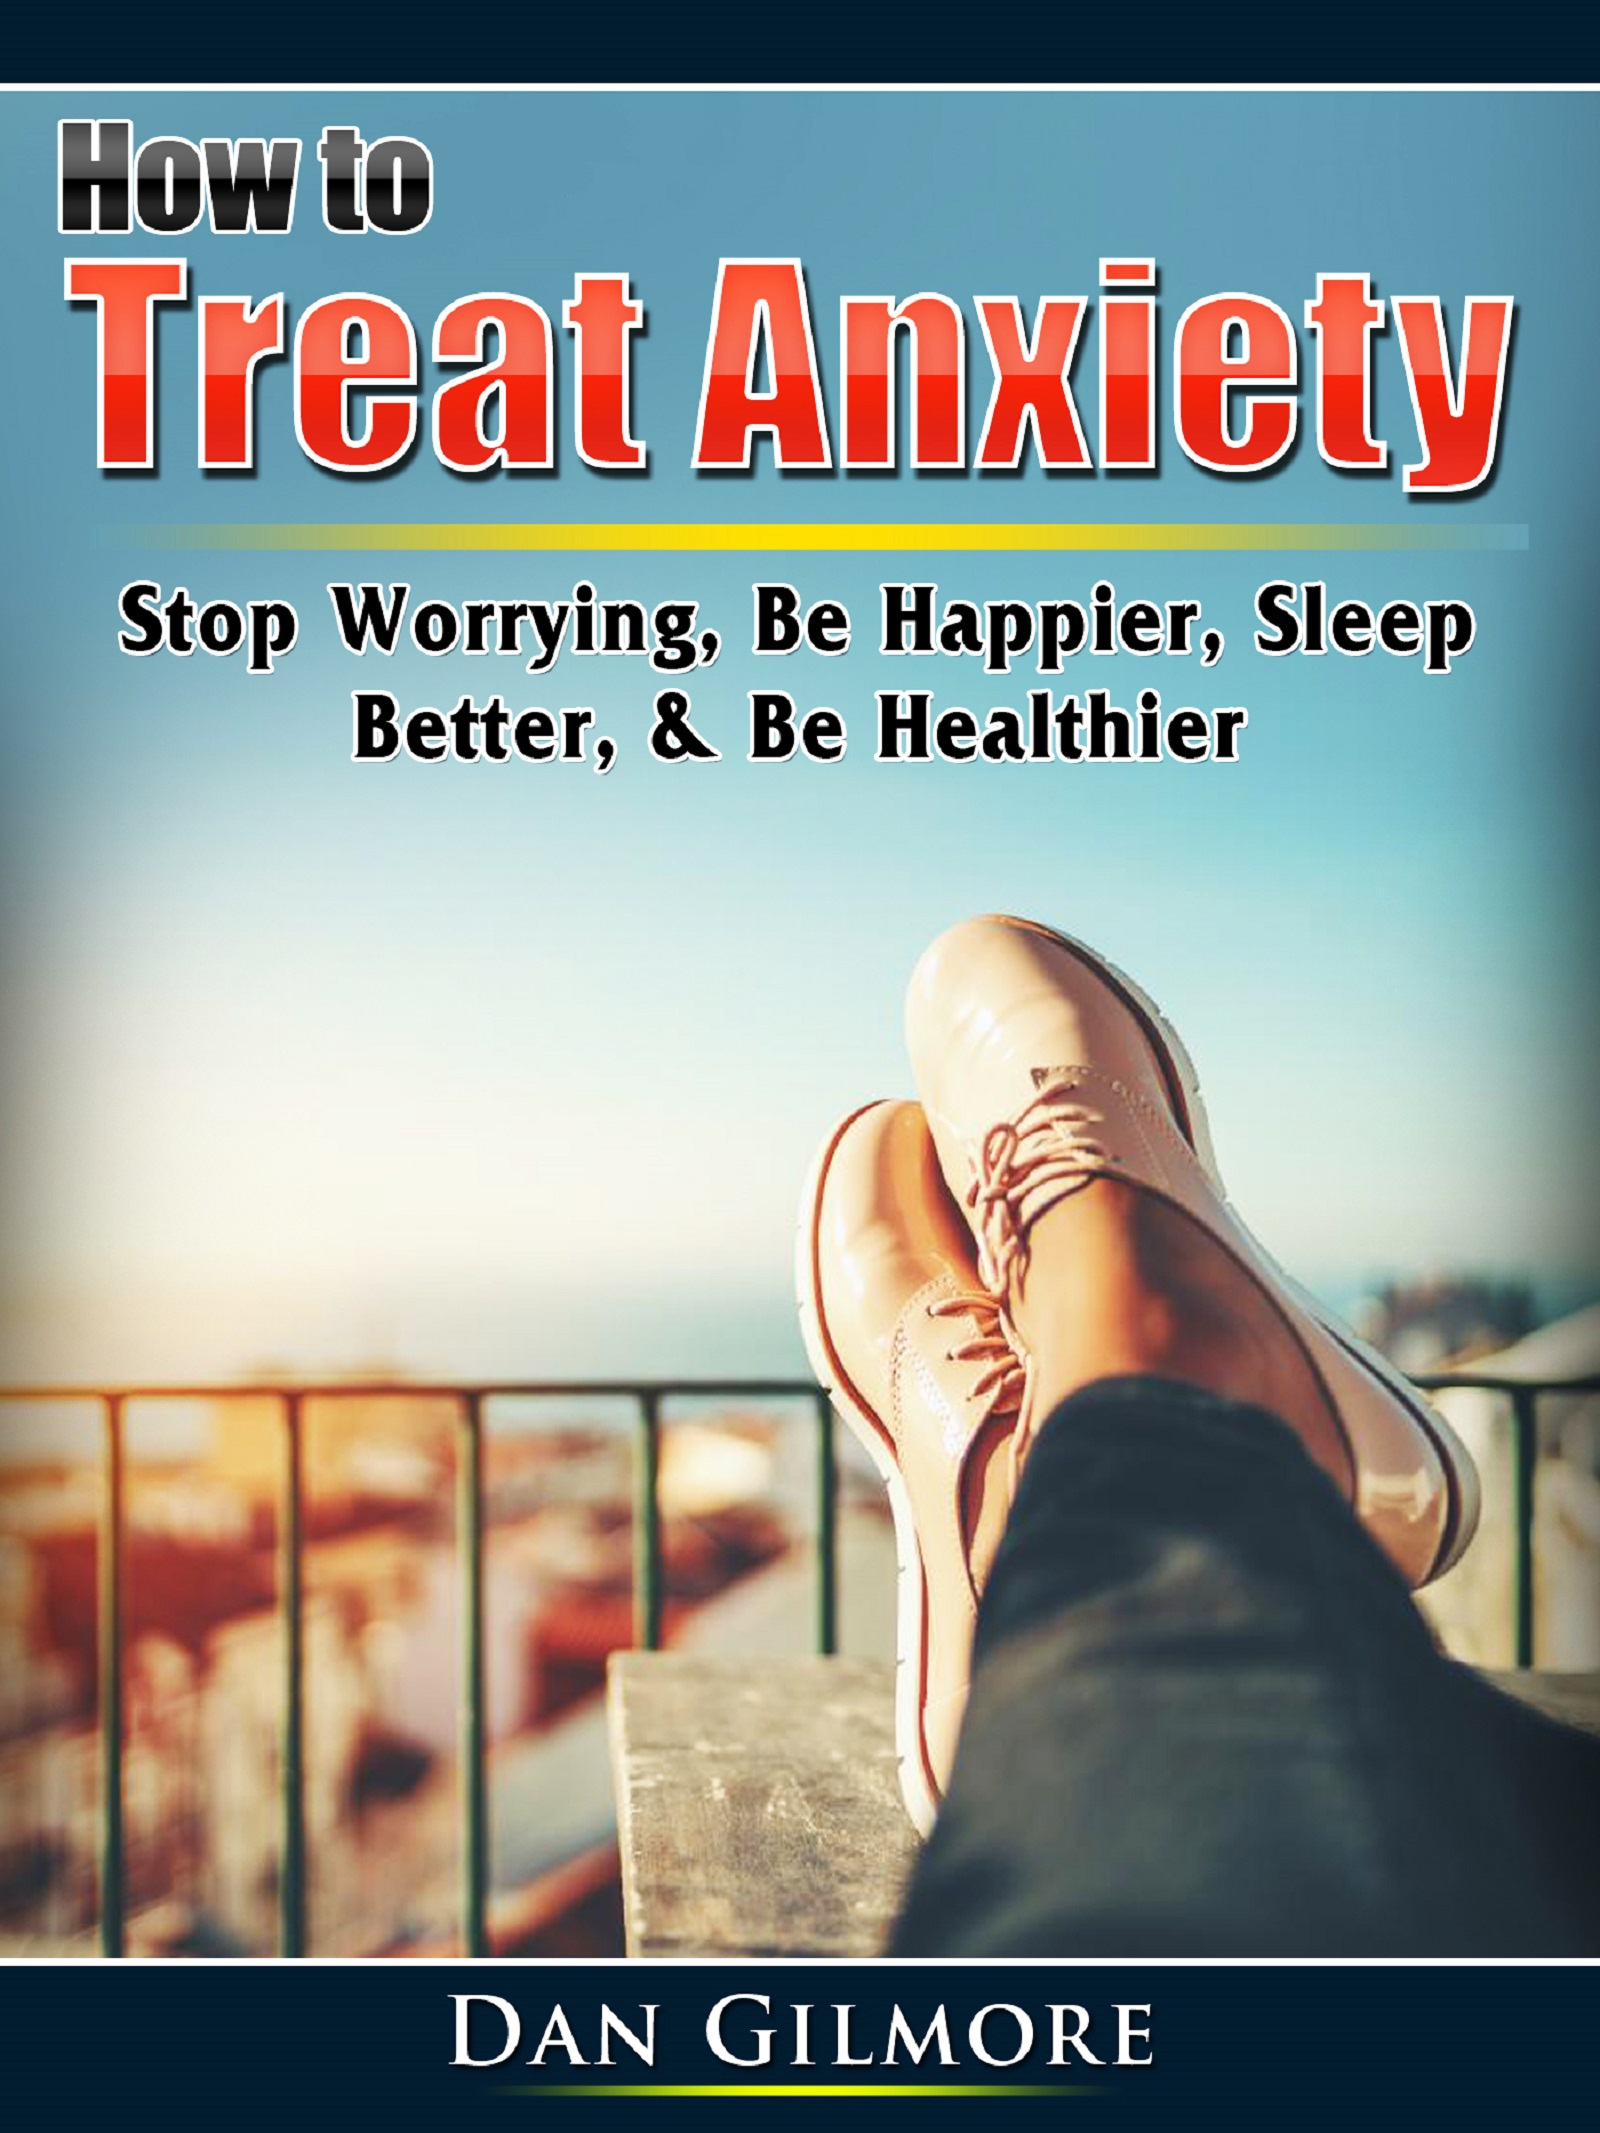 How to treat anxiety: stop worrying, be happier, sleep better, & be healthier doug fredrick